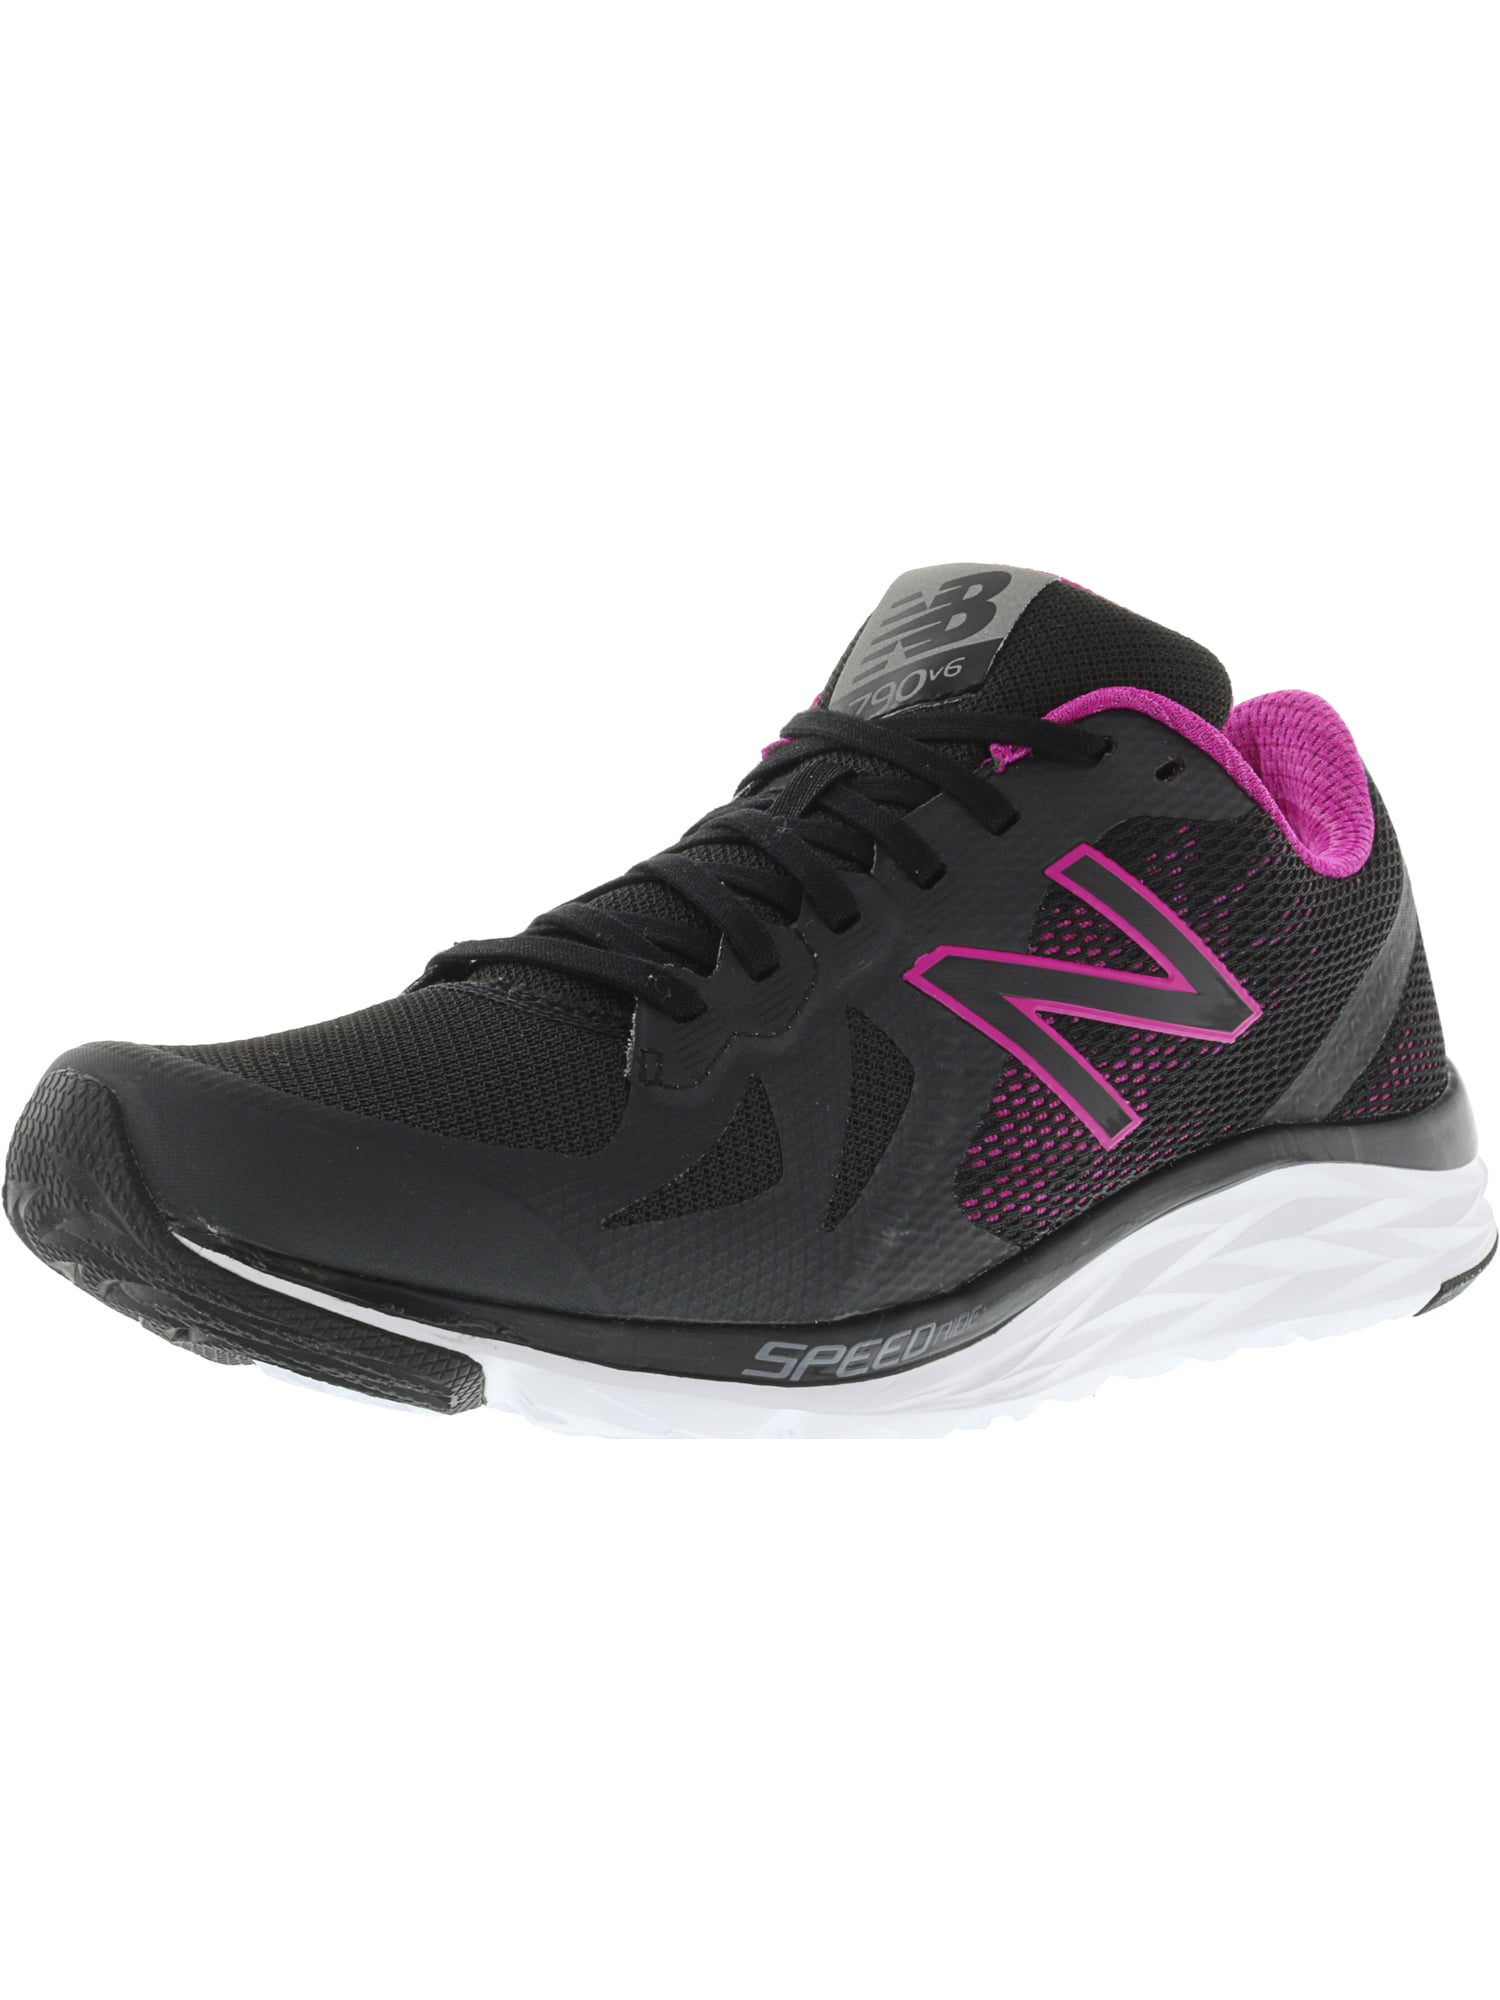 New Balance Women's W790 Ro6 Ankle-High Running Shoe 11M by New Balance